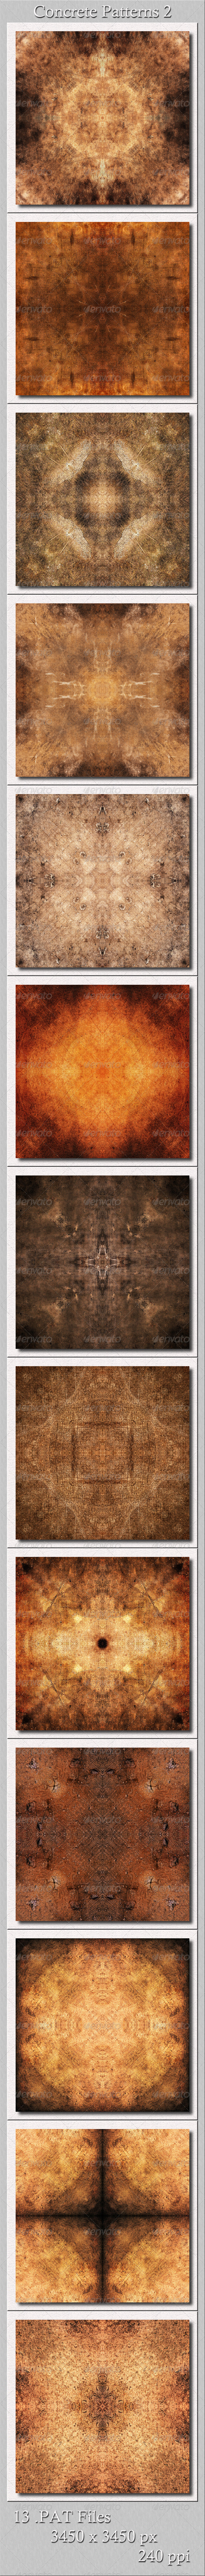 GraphicRiver Concrete Patterns Pkg2 5675442